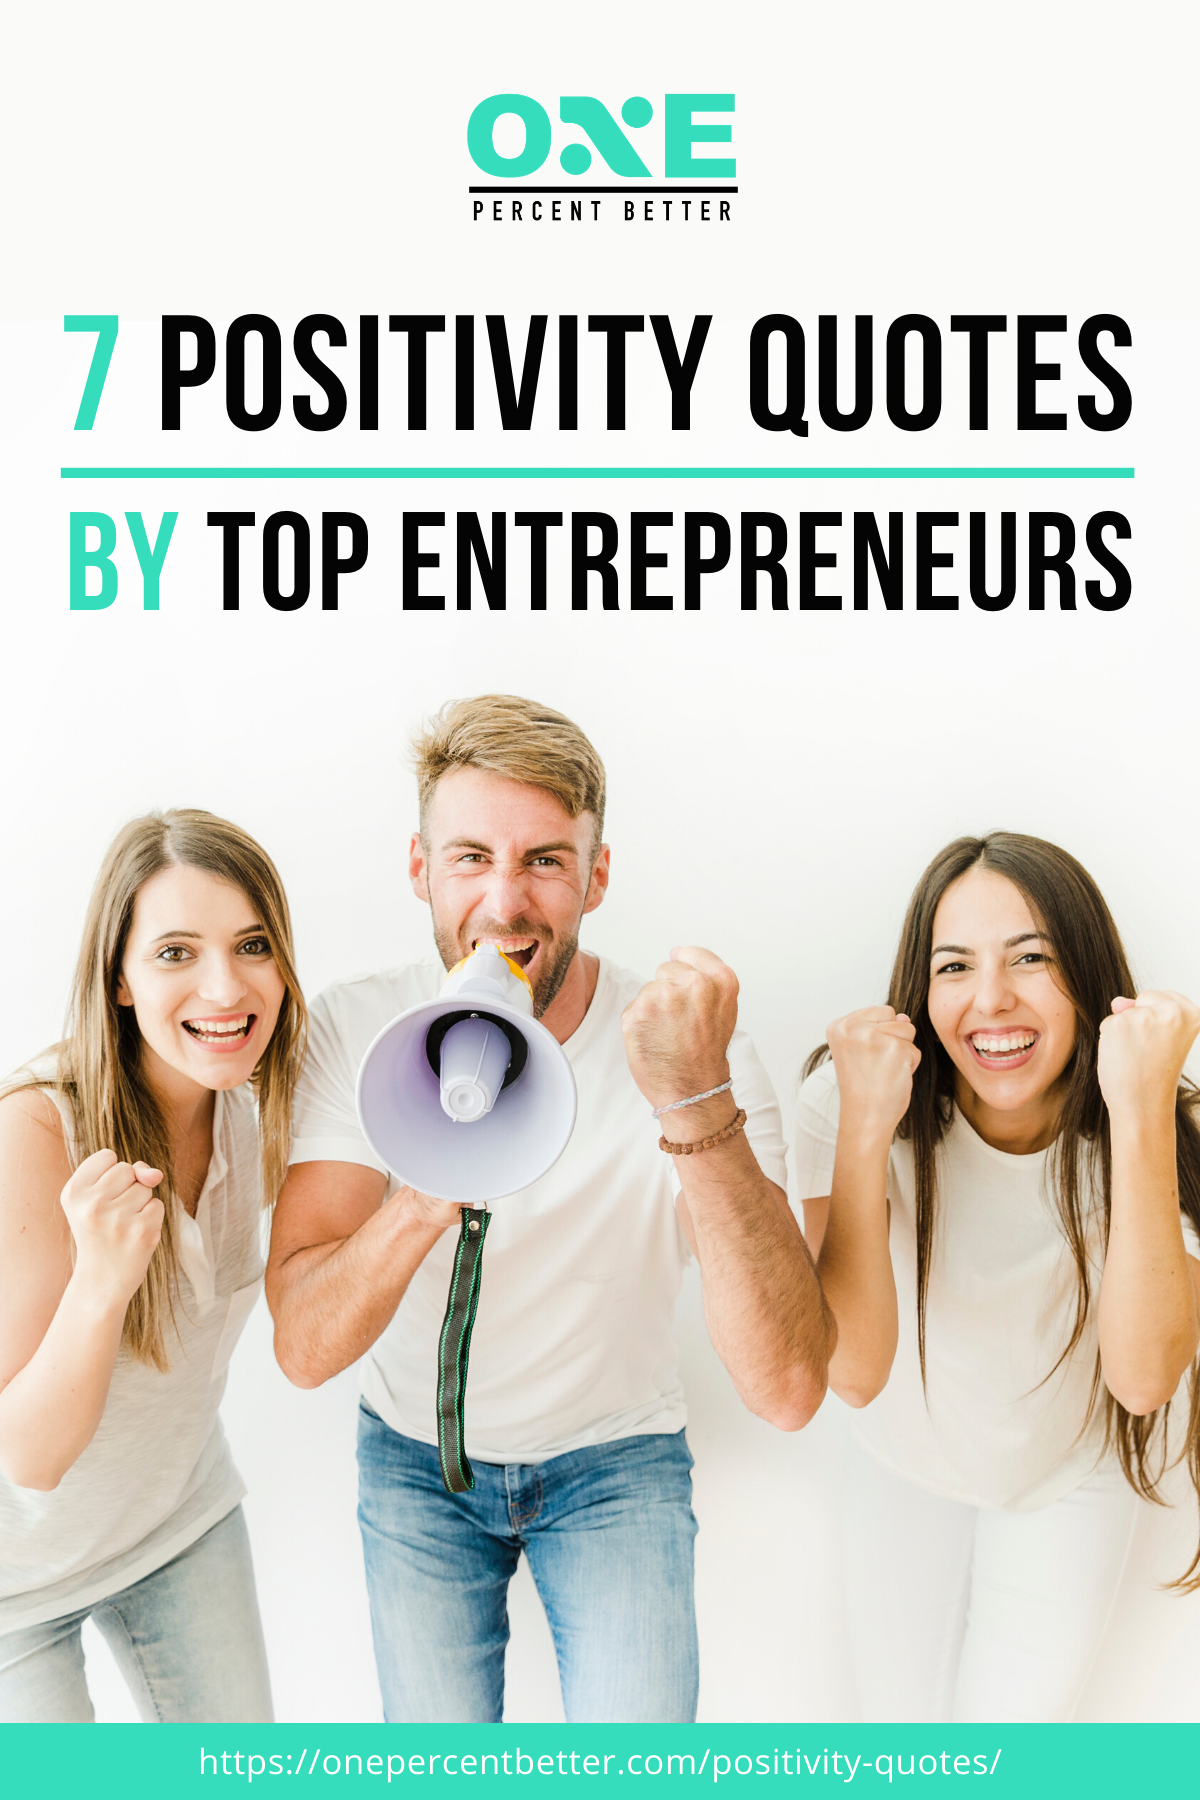 7 Positivity Quotes By Top Entrepreneurs https://onepercentbetter.com/positivity-quotes/